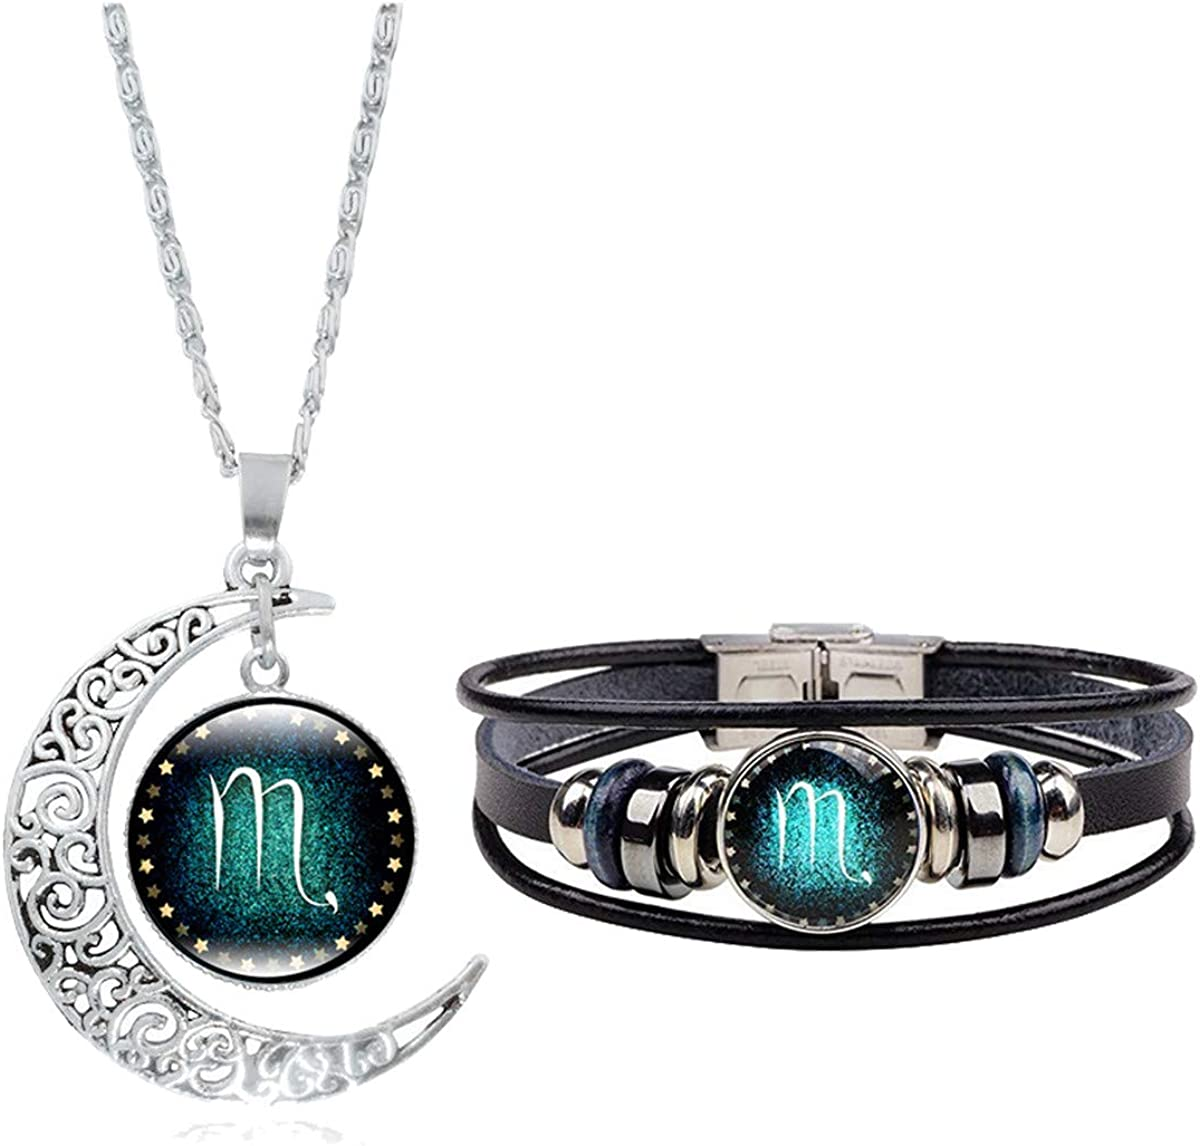 Fashion 12 Twelve Constellations Hand Woven Leather Bracelet and Moon Pendant Necklace Zodiac Sign Jewelry Set